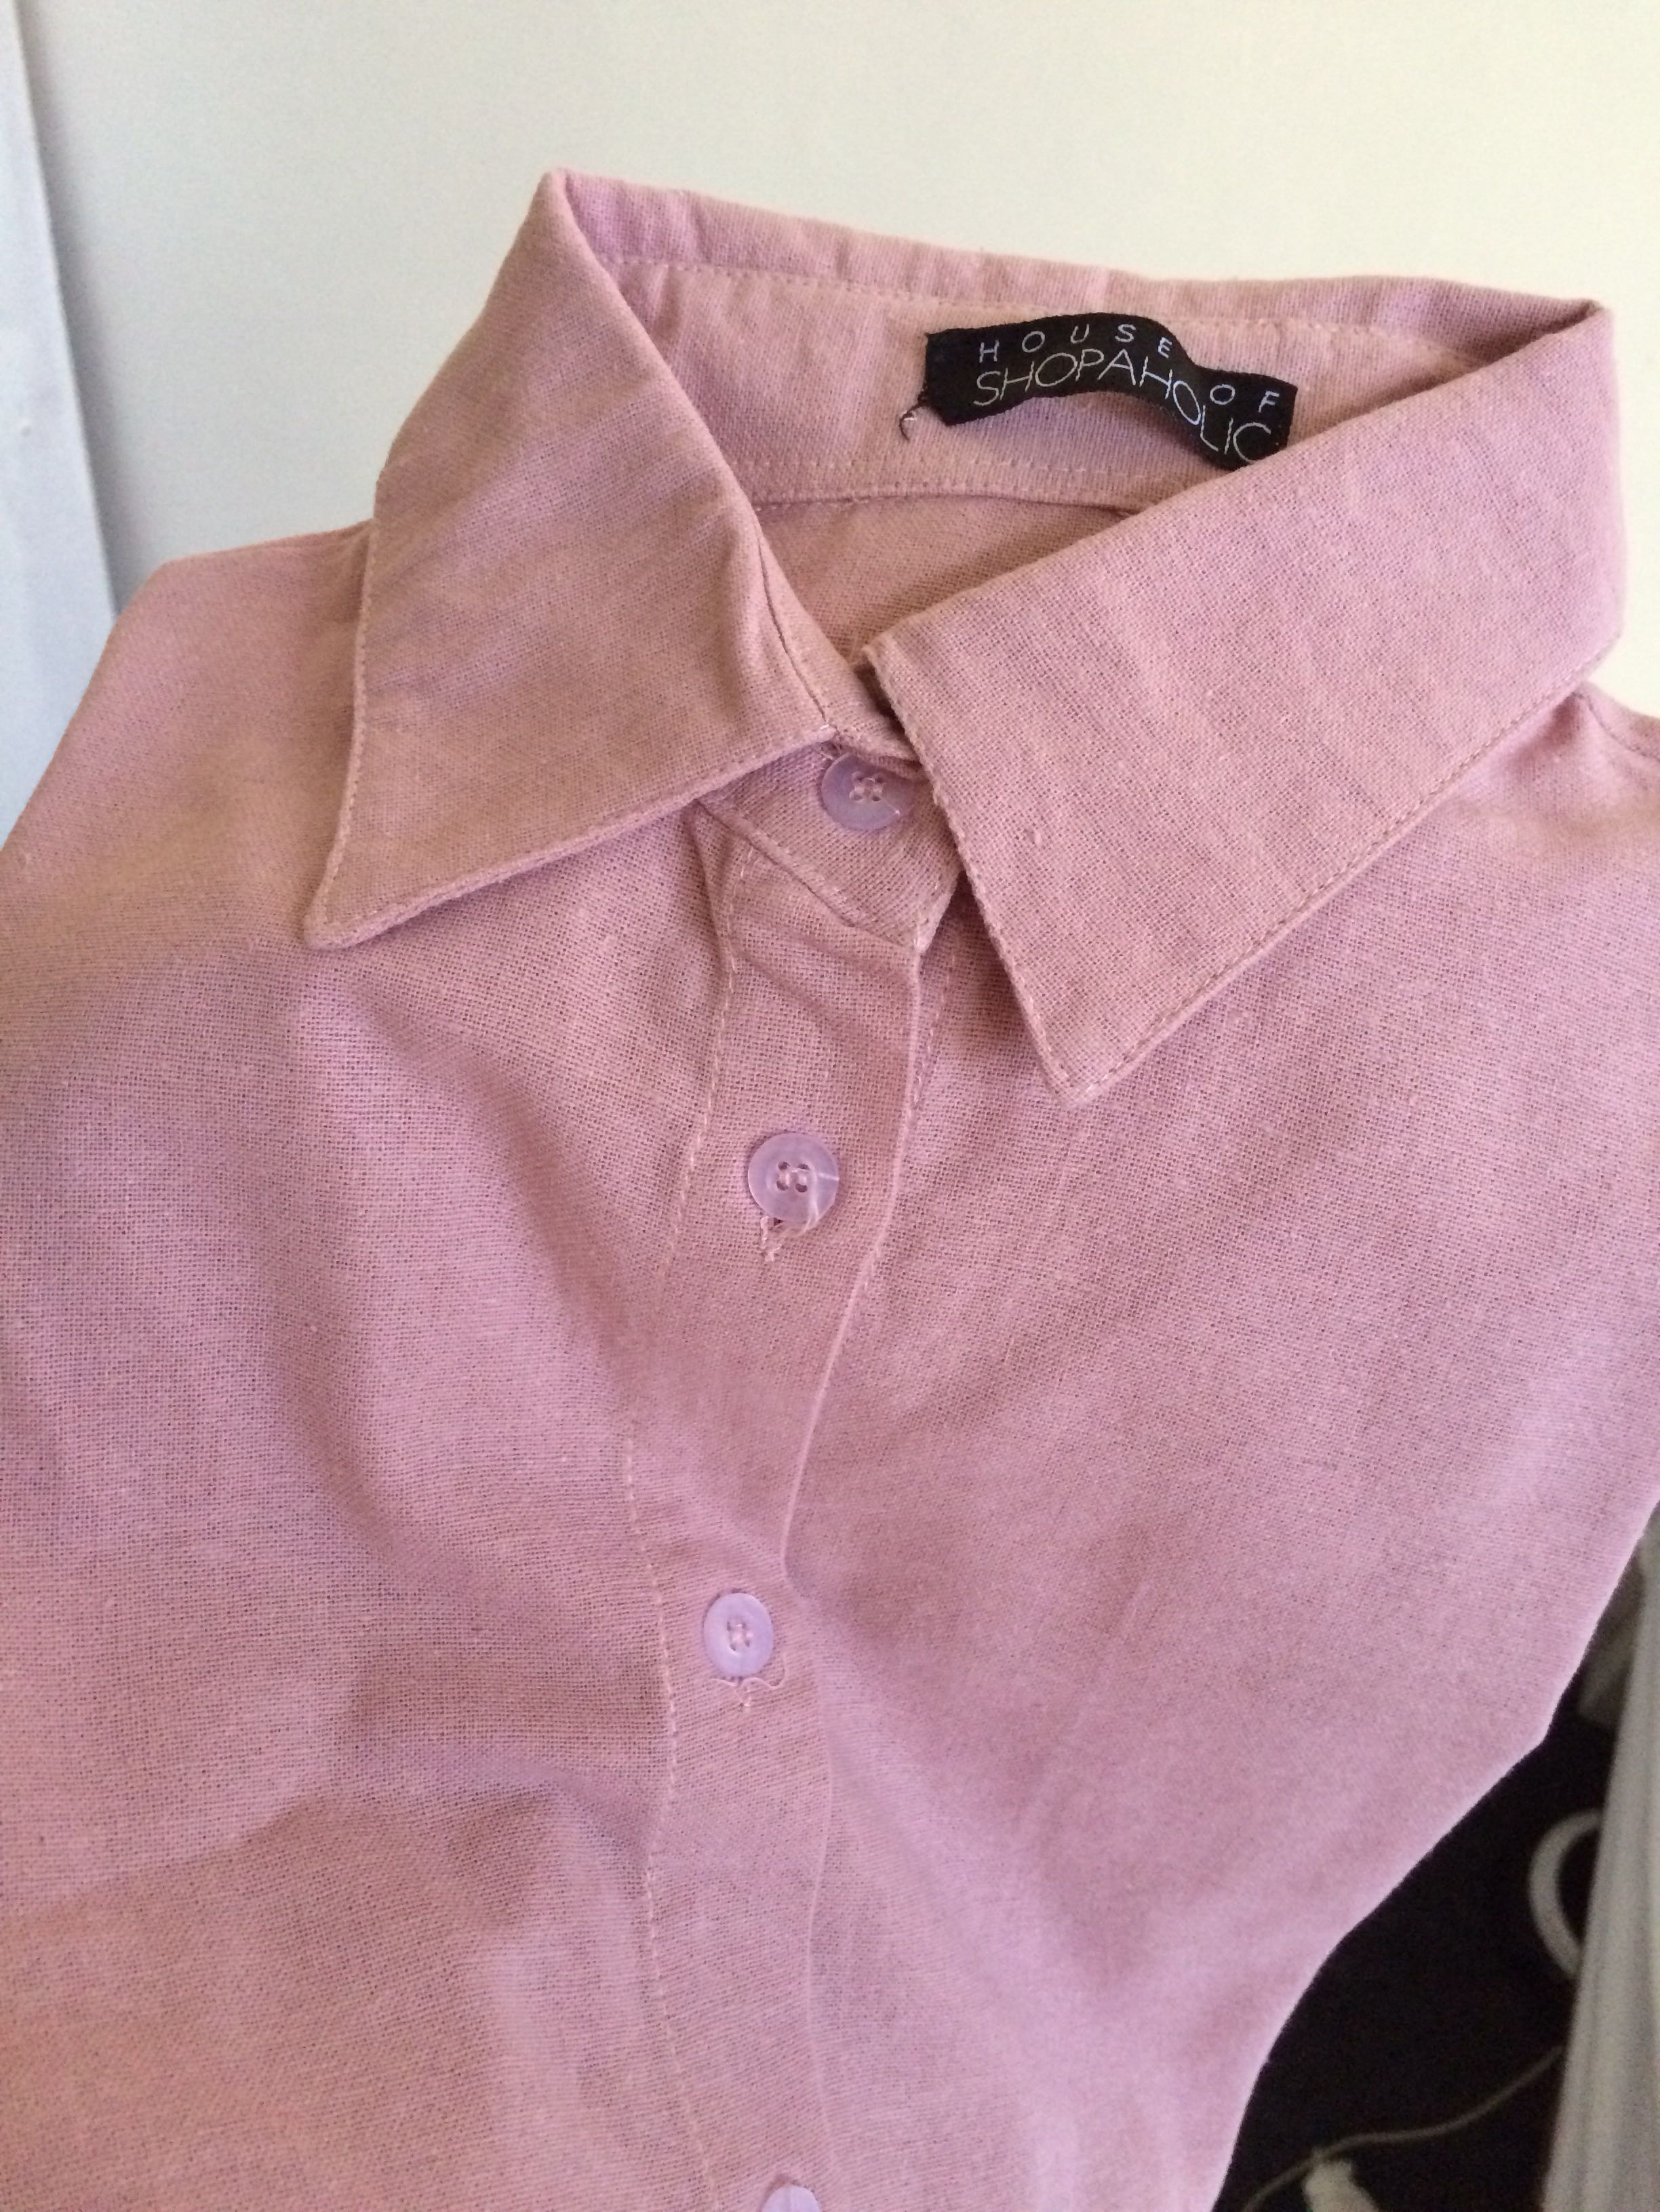 Blouse Baby pink fit to XL (Dove shirt)